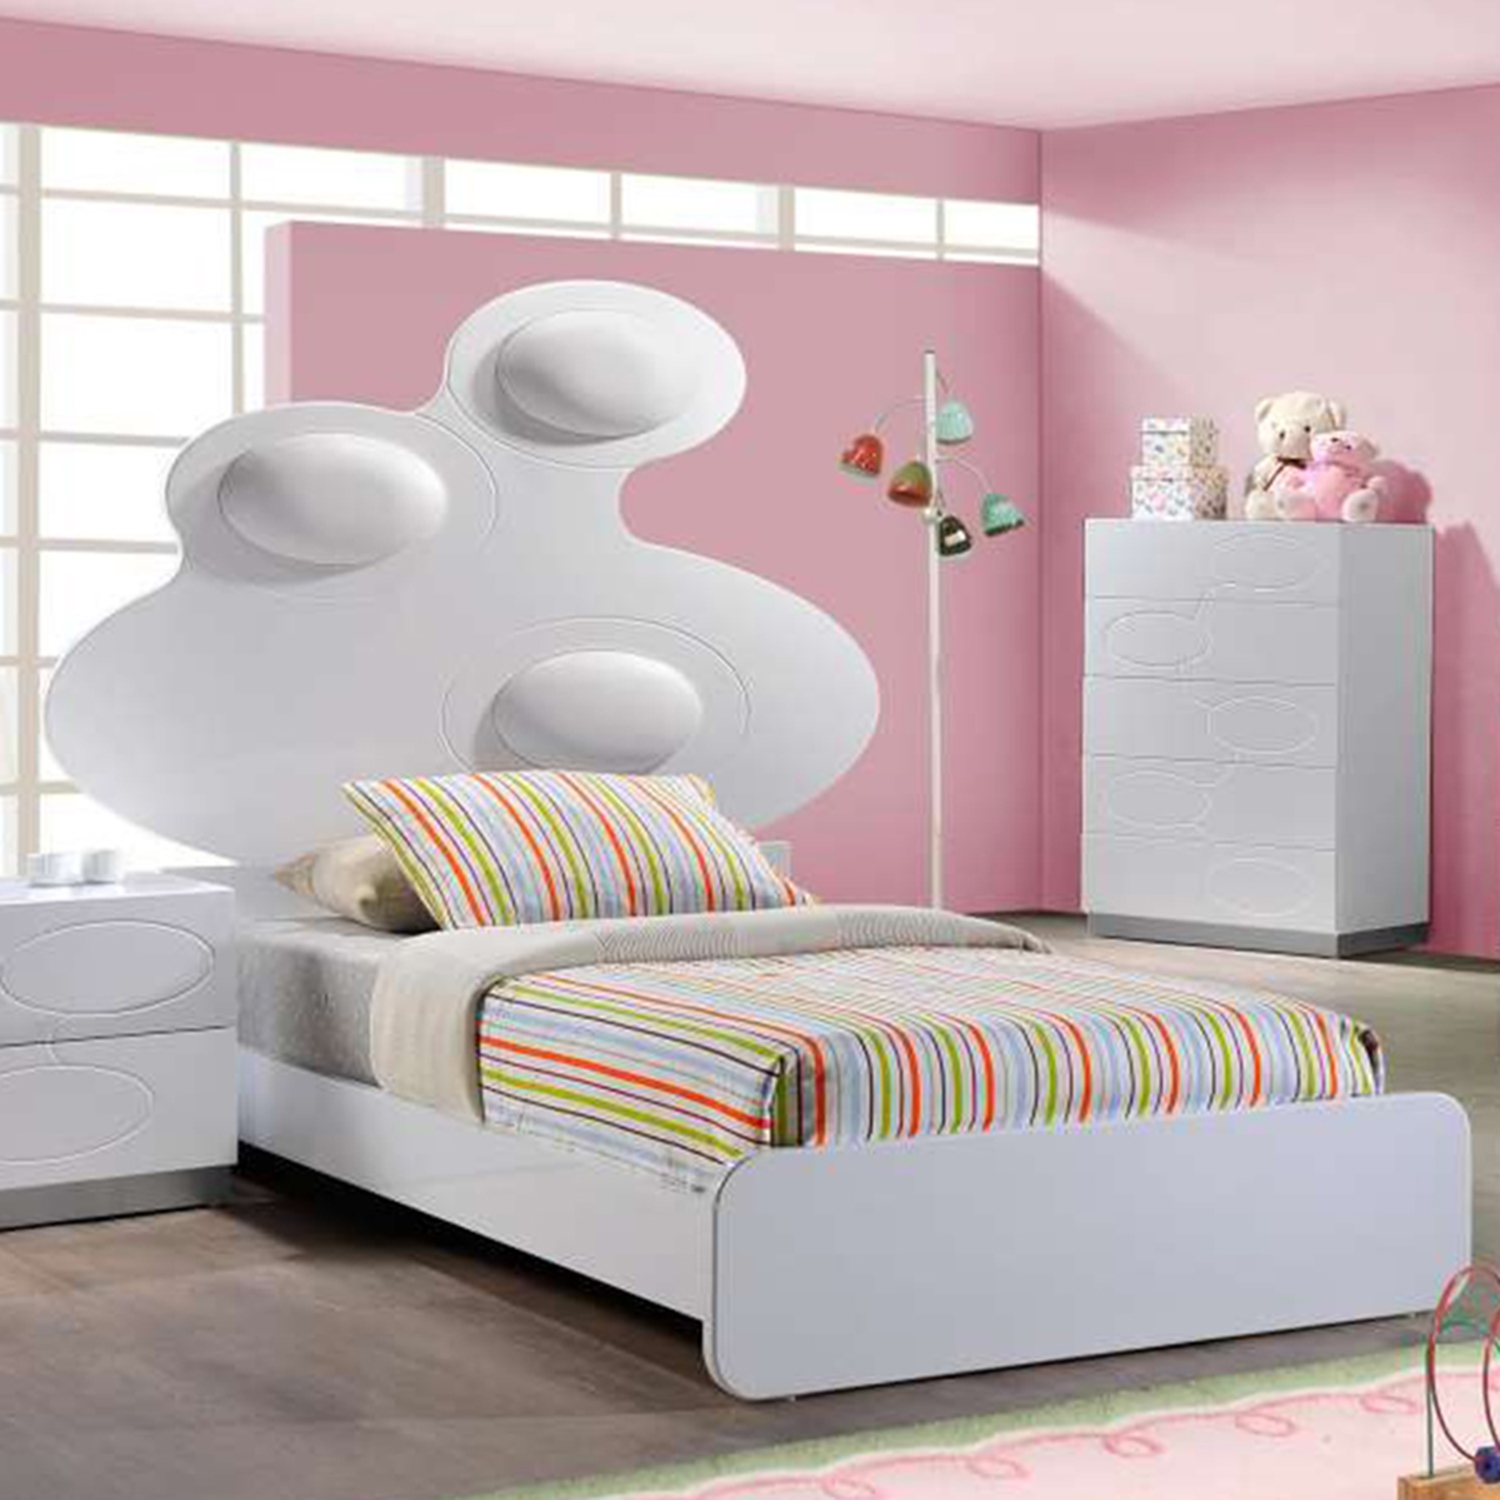 Lola Bed in High Gloss White with White Cushion